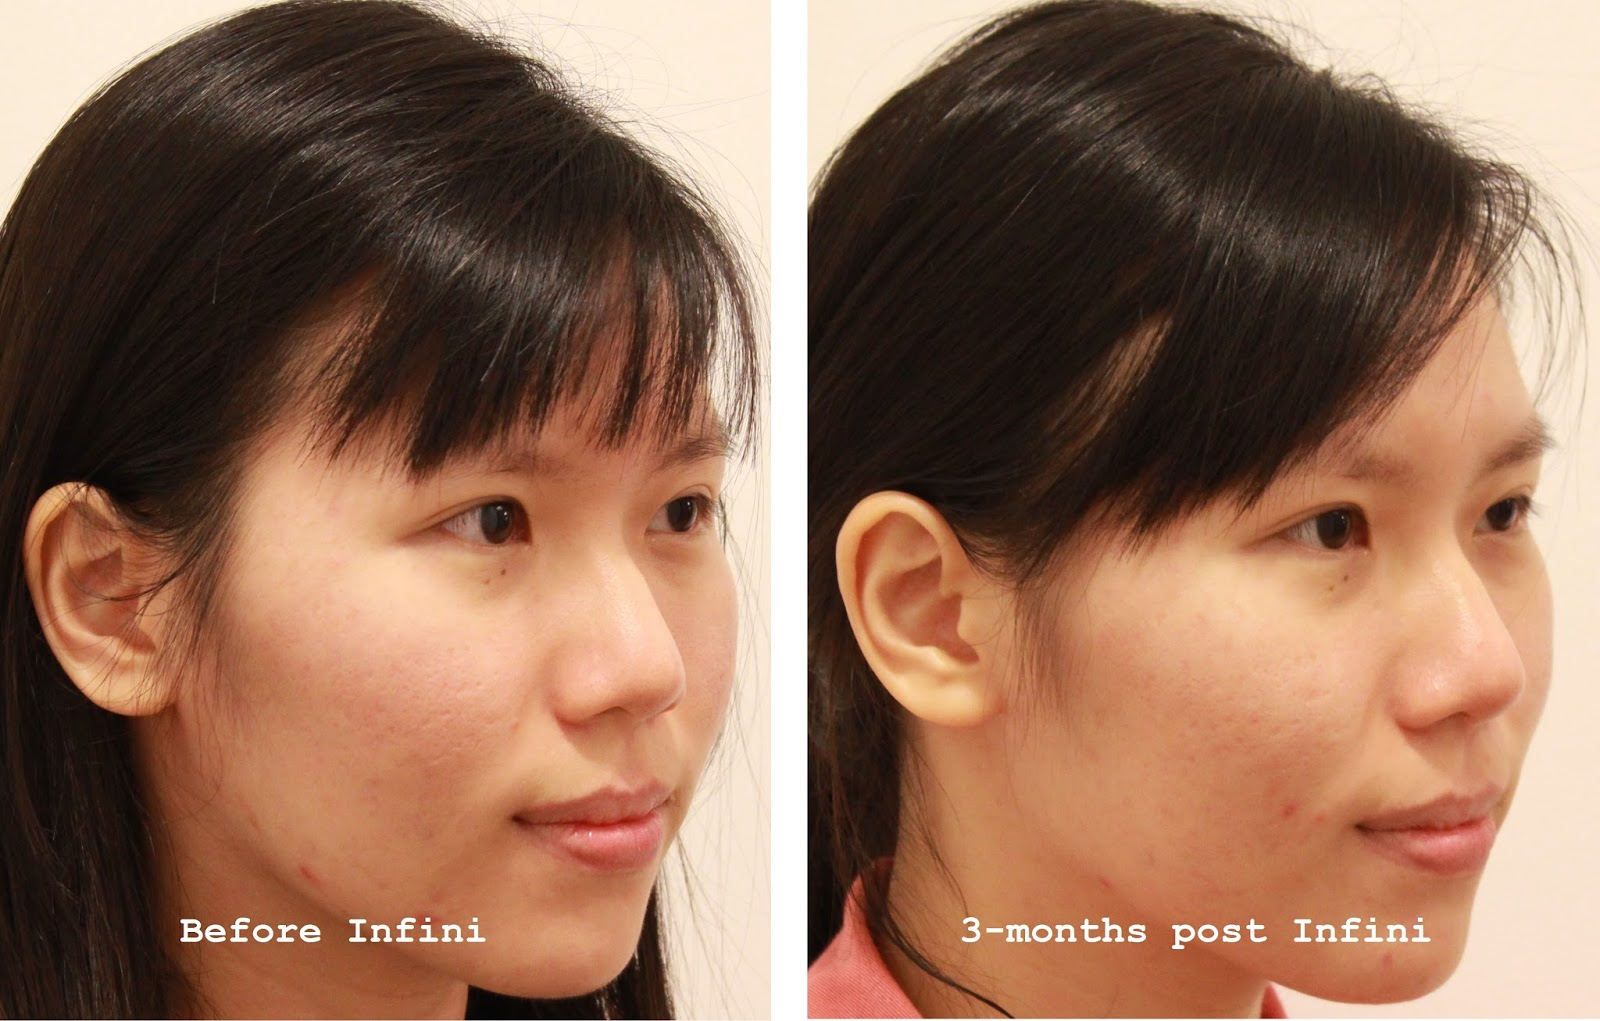 Treatment] Infini Fractional Radiofrequency for Depressed